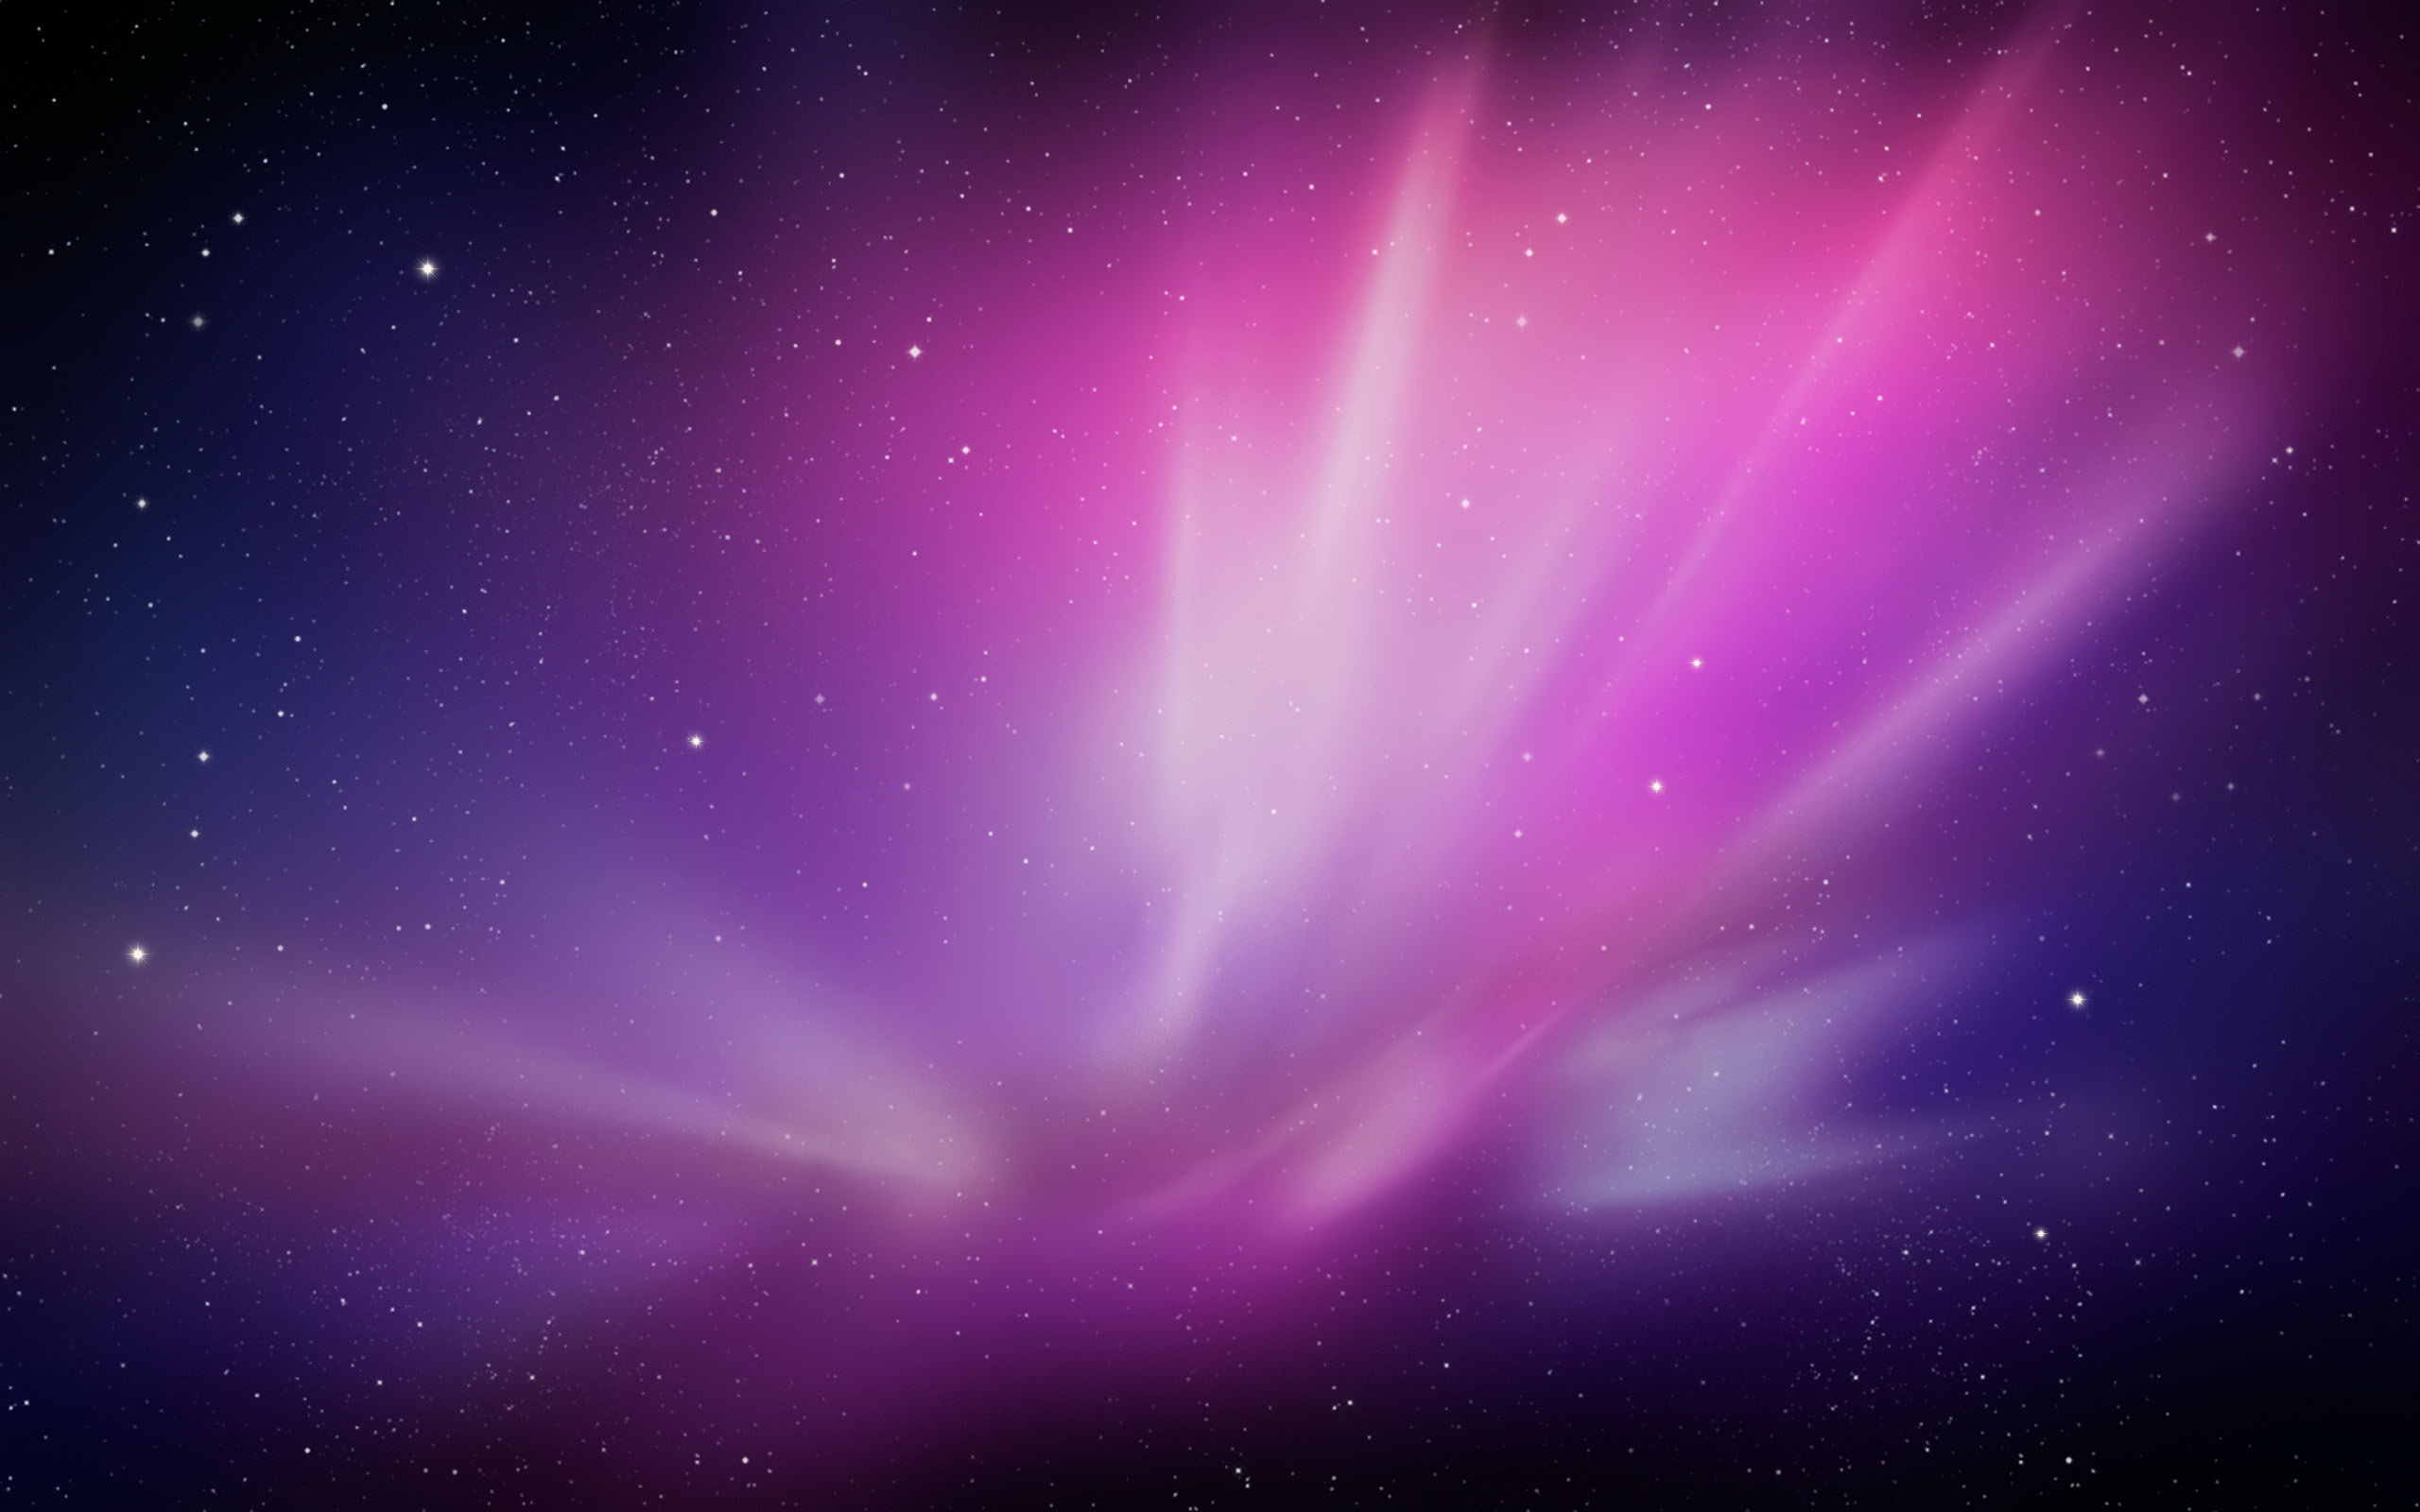 Apple] Mac OSX Wallpaper Apfelmagcom 2560x1600